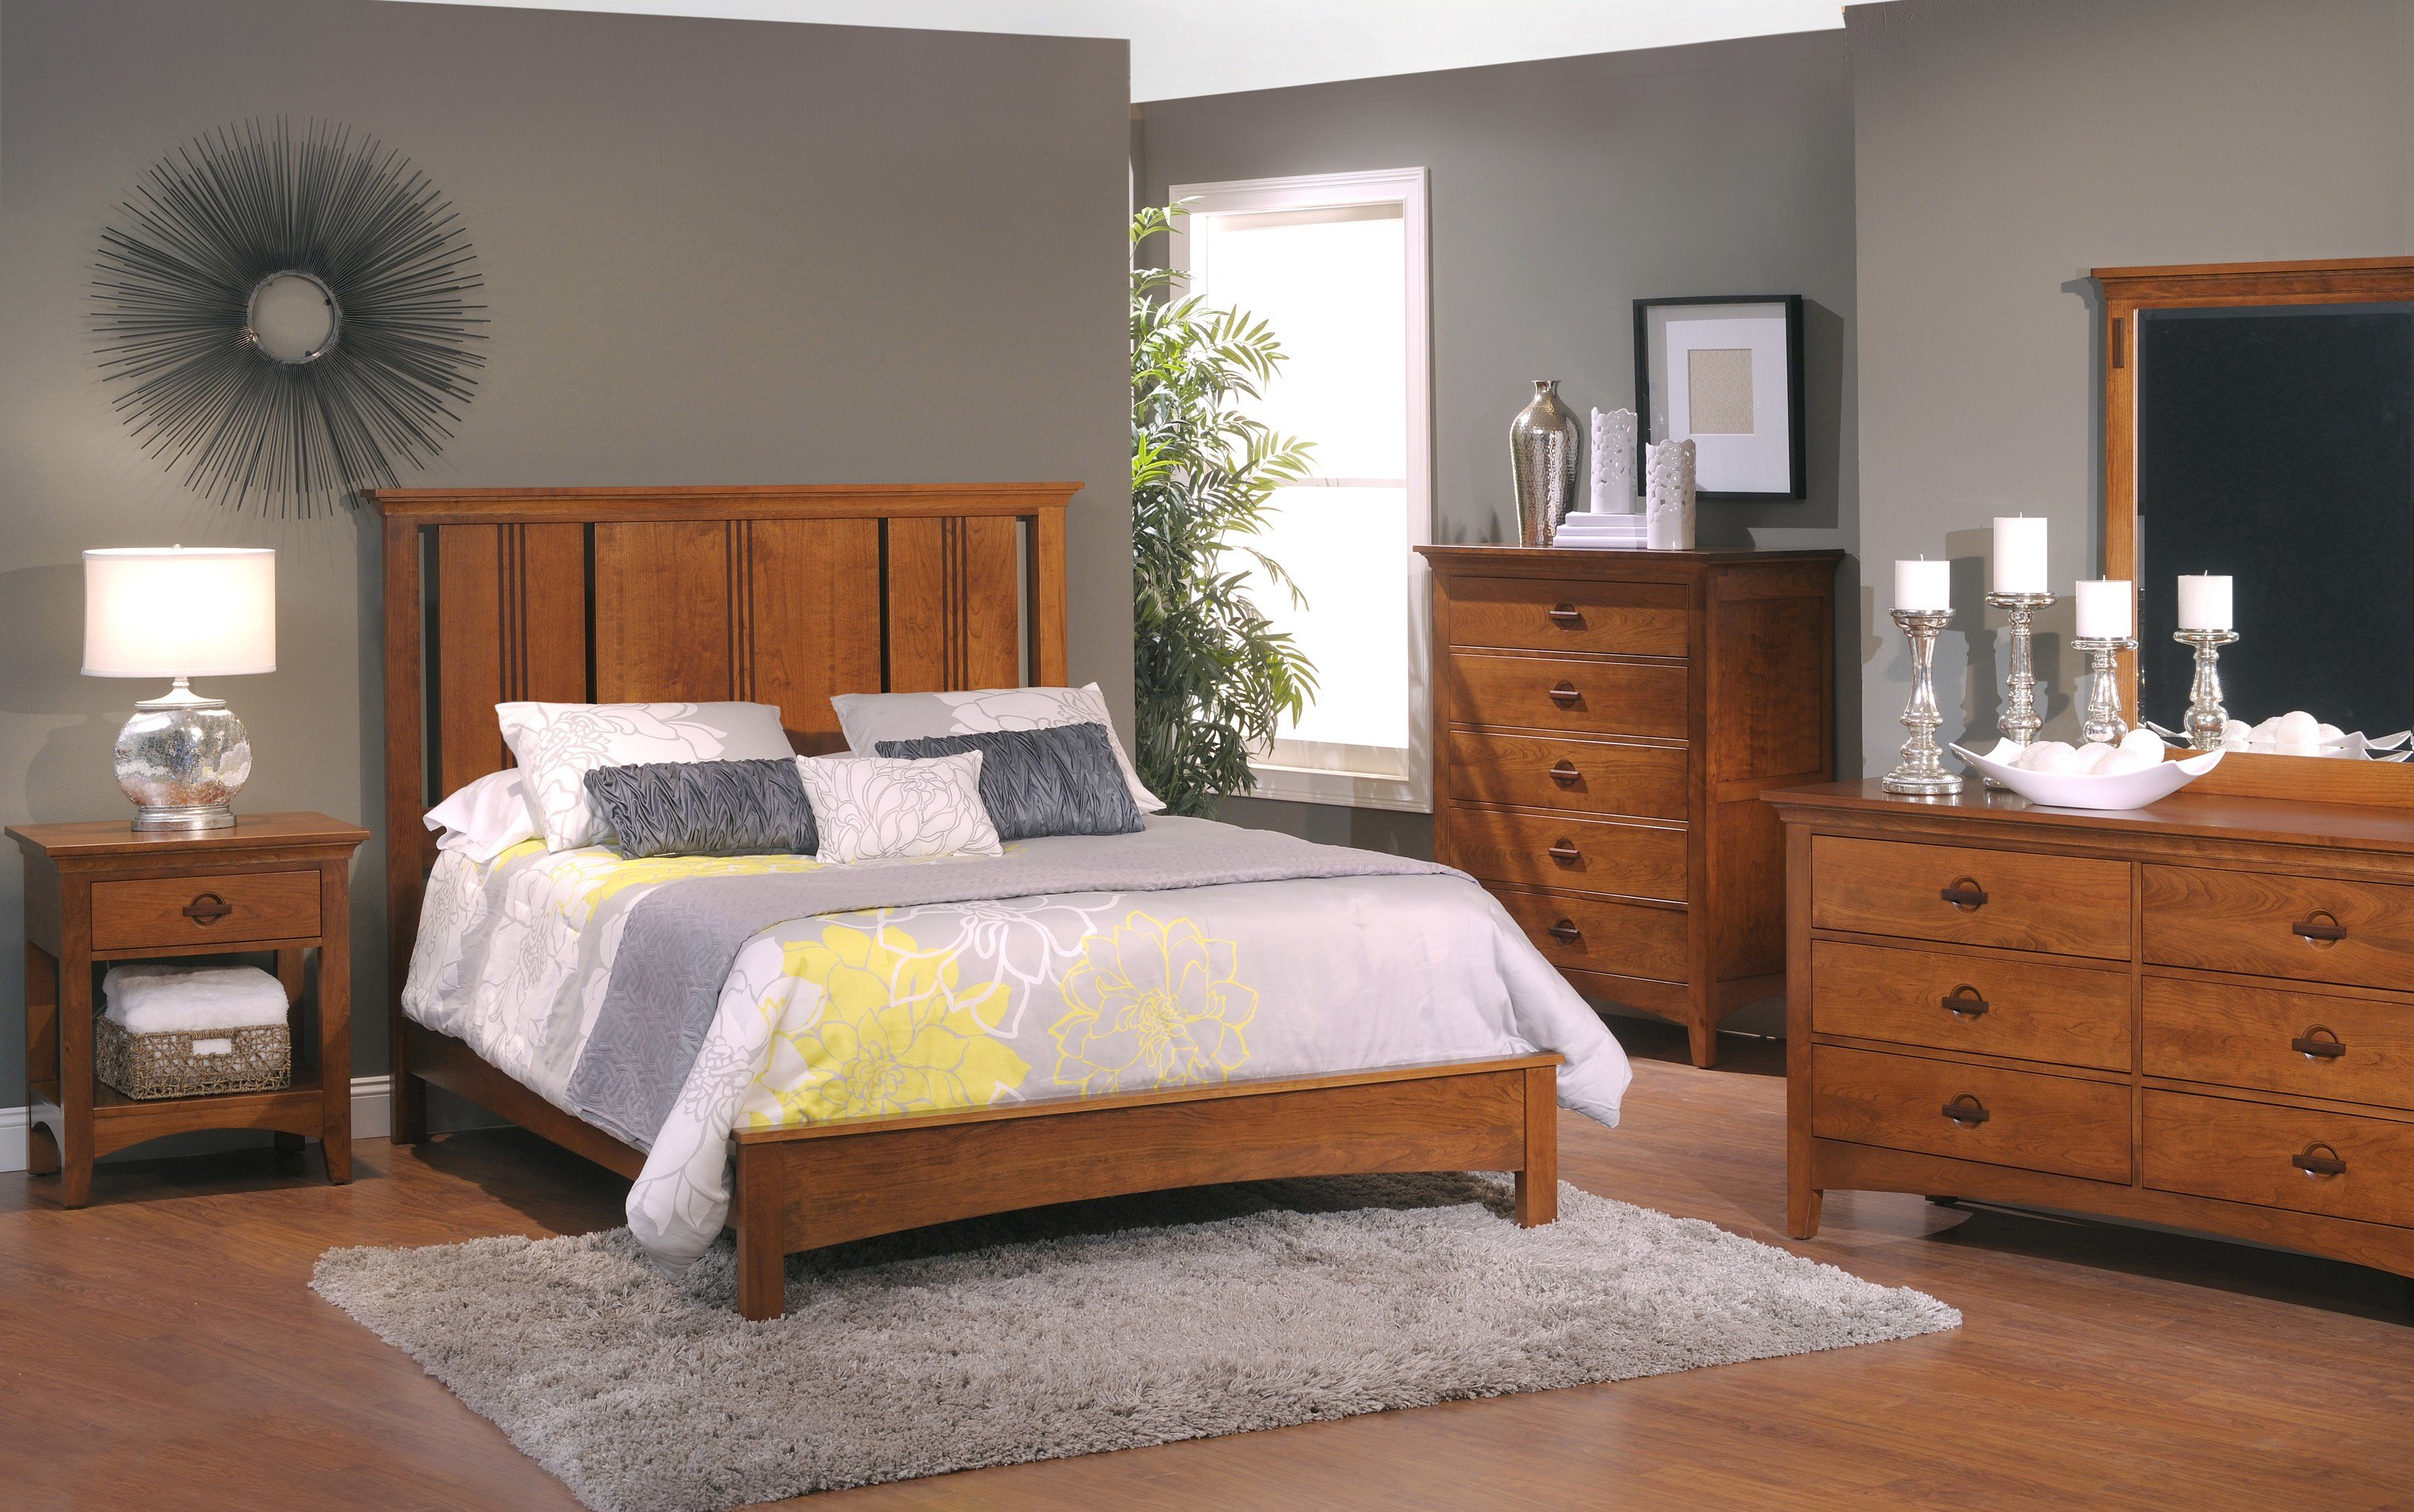 Best Great White Shaker Style Bedroom Furniture Greenvirals Style With Pictures